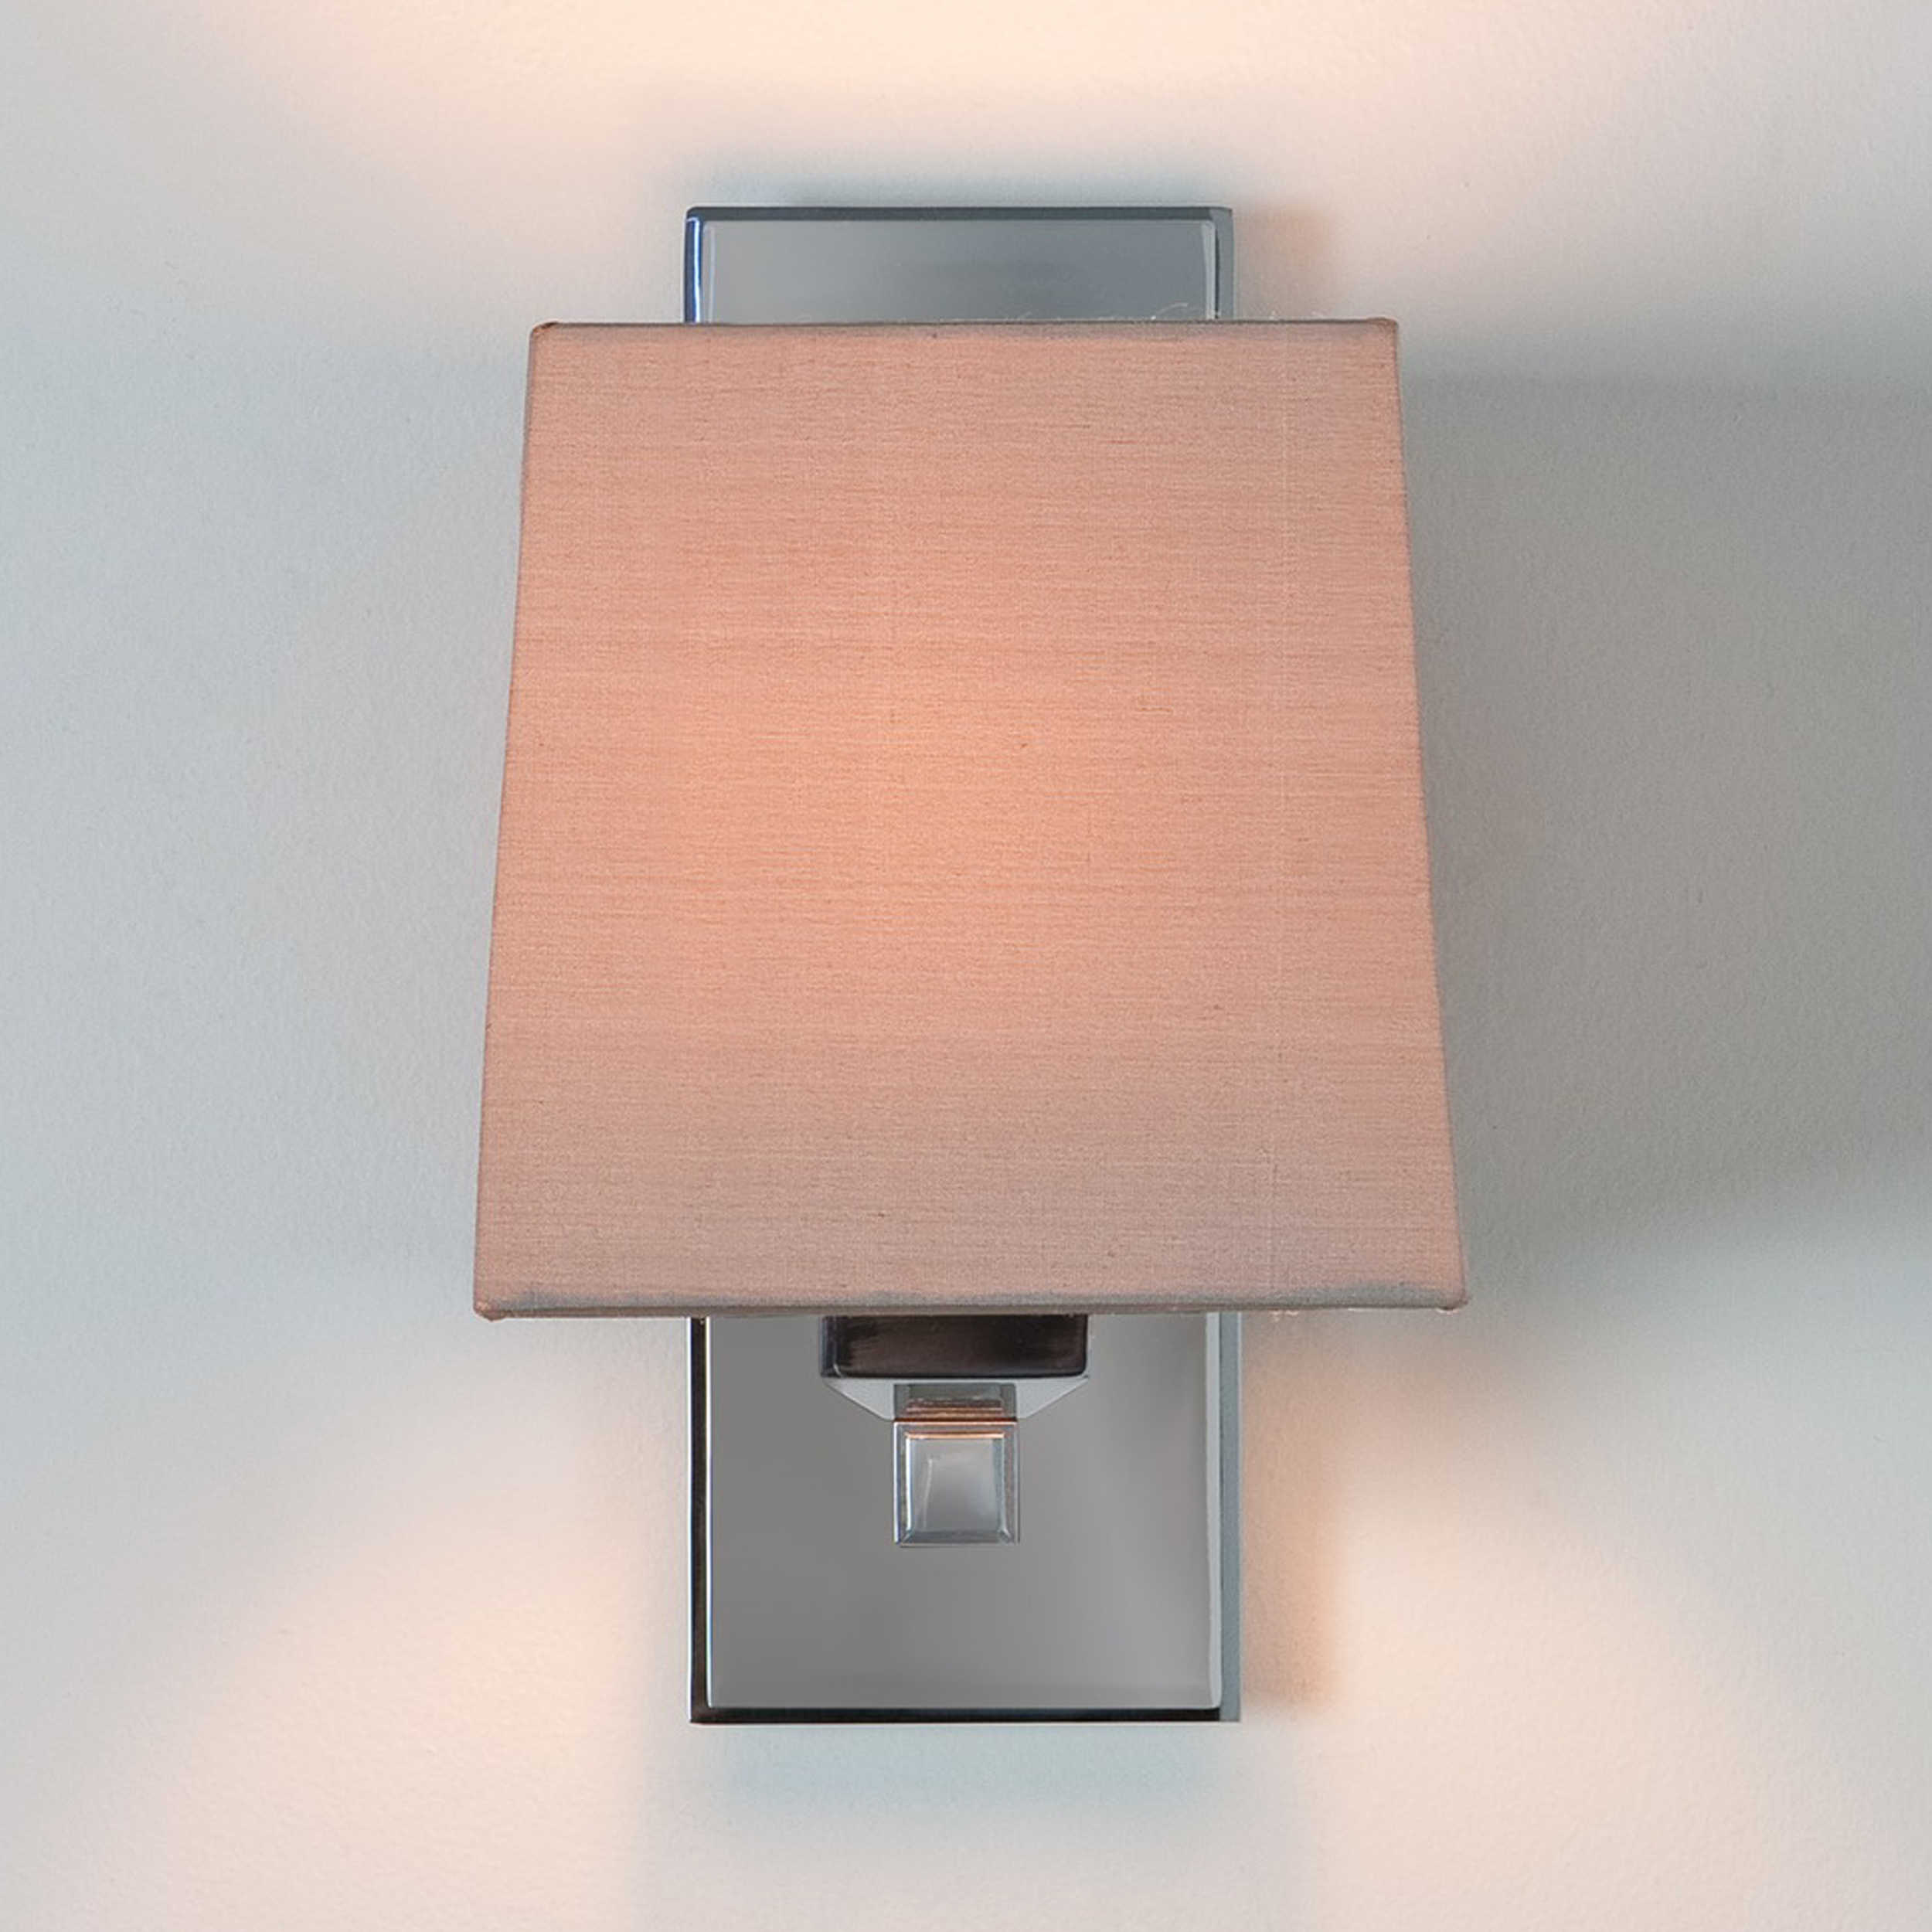 Astro Lambro 220 Wall Light Polished Nickel